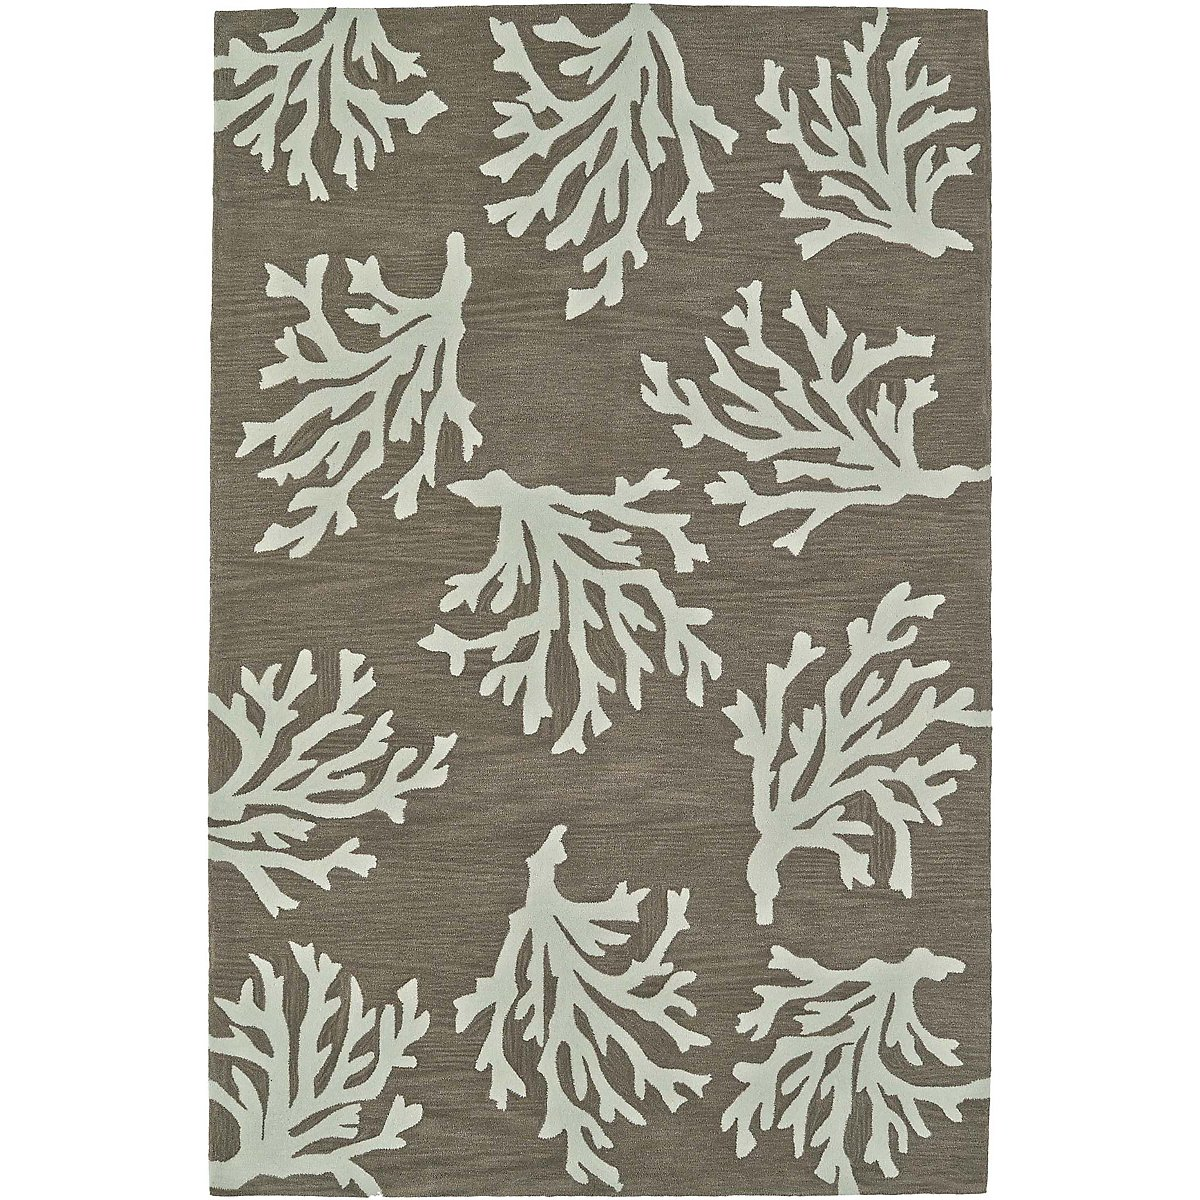 Seaside Khaki 5x8 Area Rug